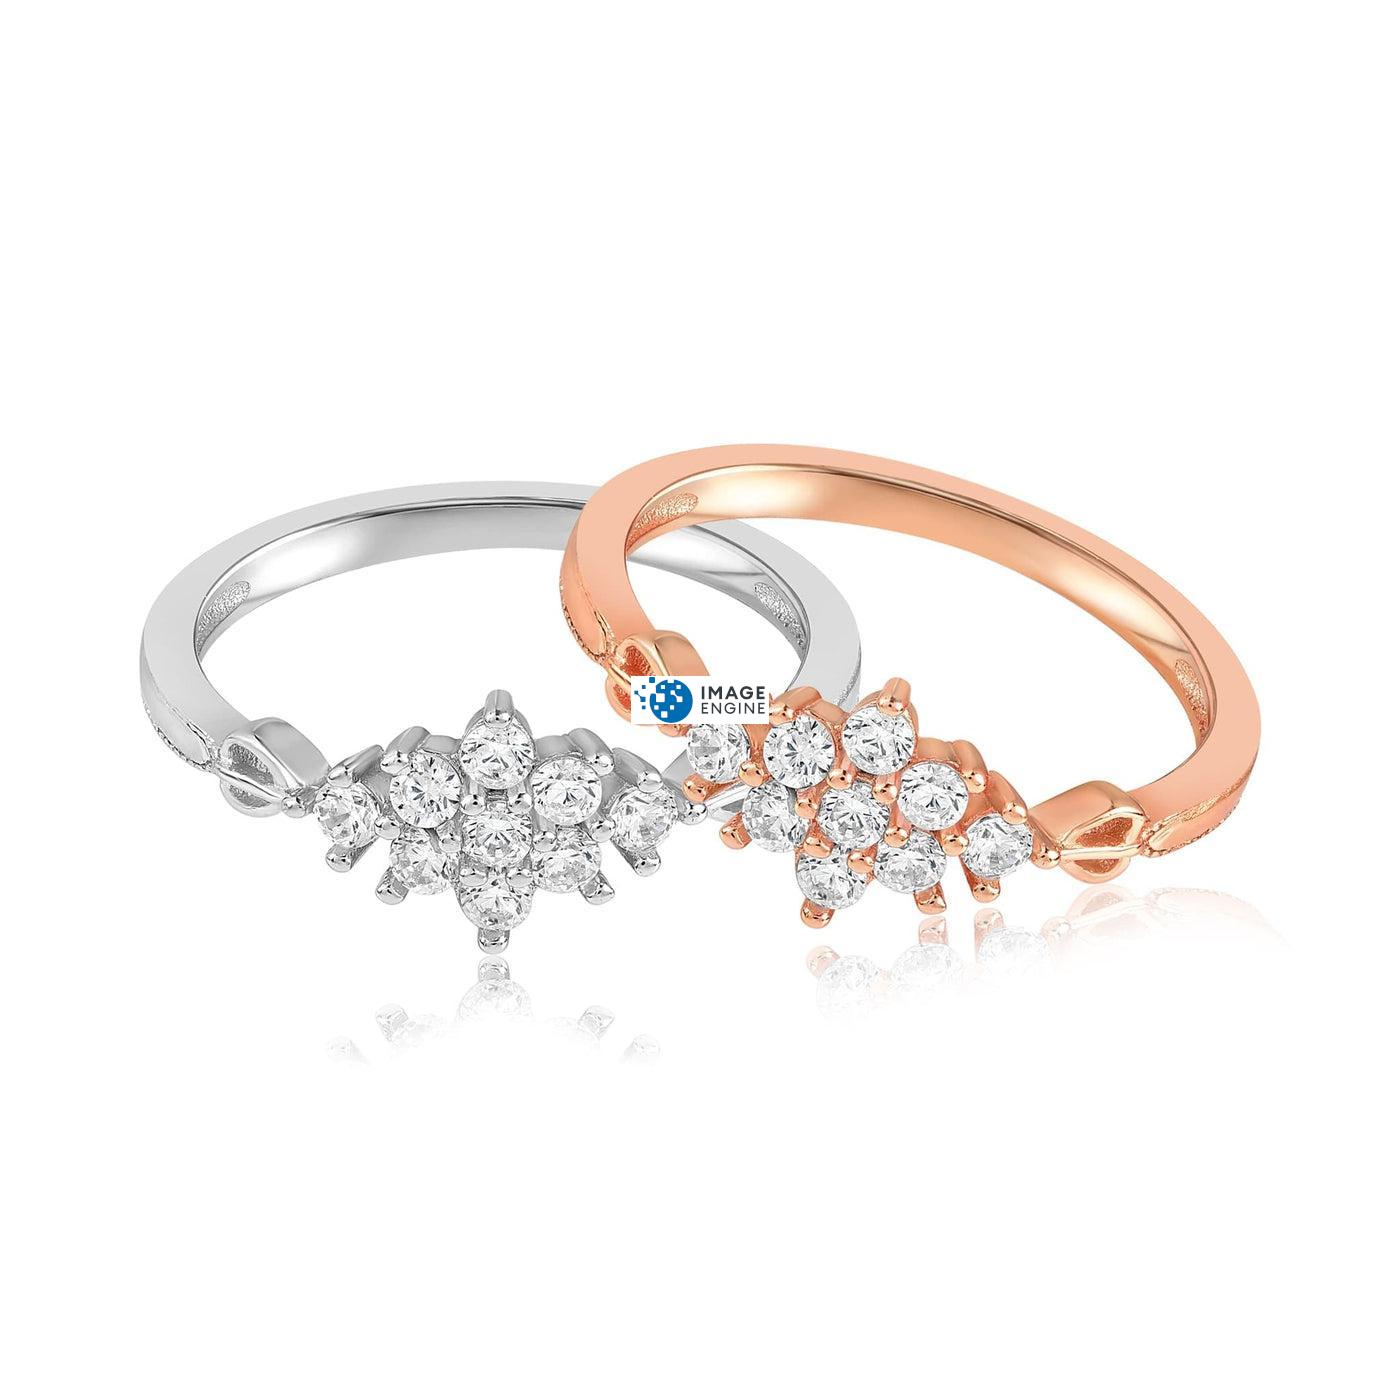 Sarah Snowflake Dainty Ring - Front View Side by Side - 18K Rose Gold Vermeil and 925 Sterling Silver